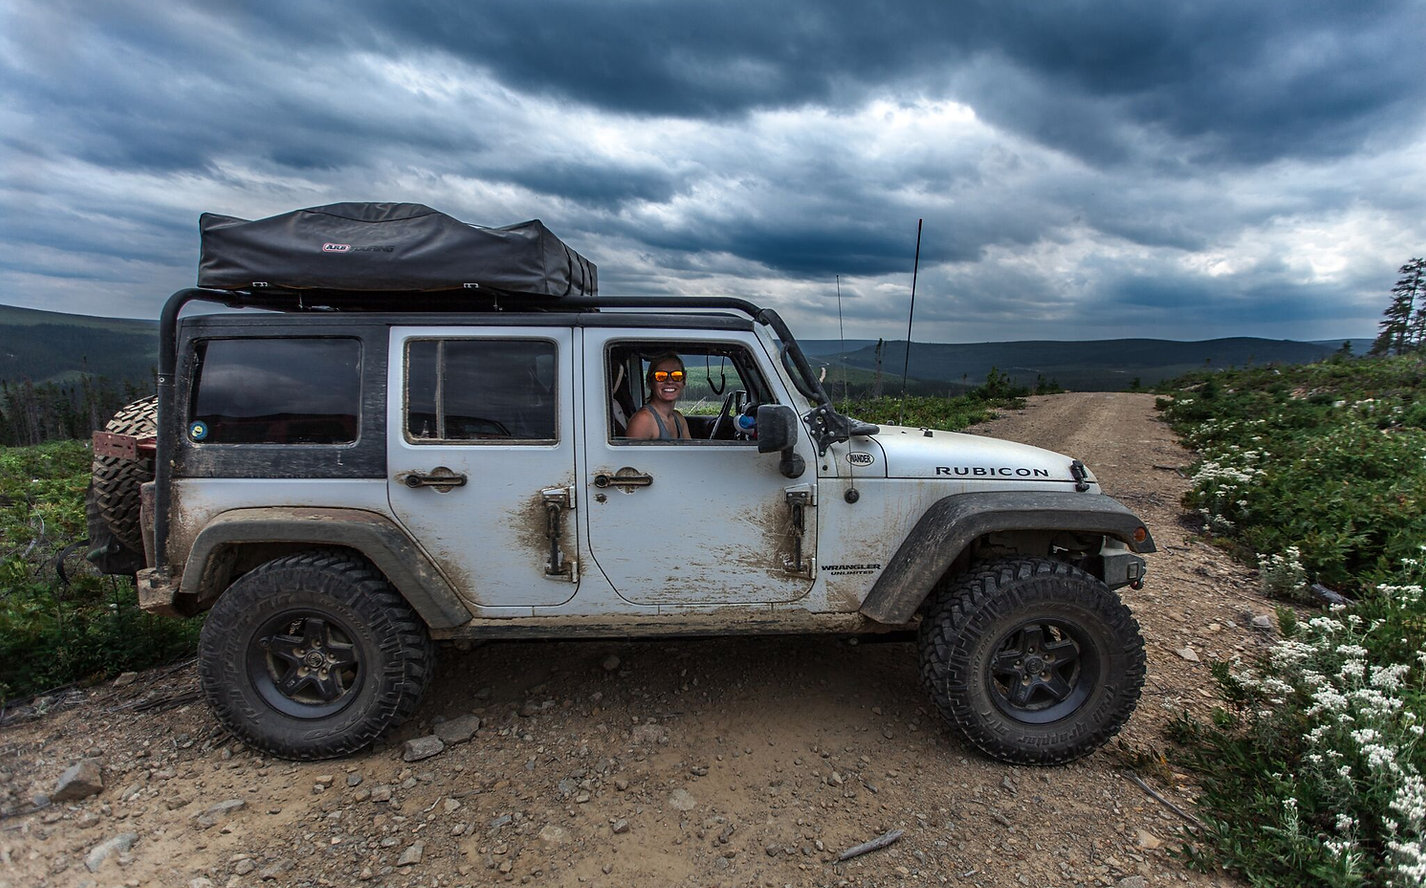 Overland Jeep, Rubicon, New Brunswick, rooftoptent, scenic, nbx, nbexpedition, KMS, kargomaster